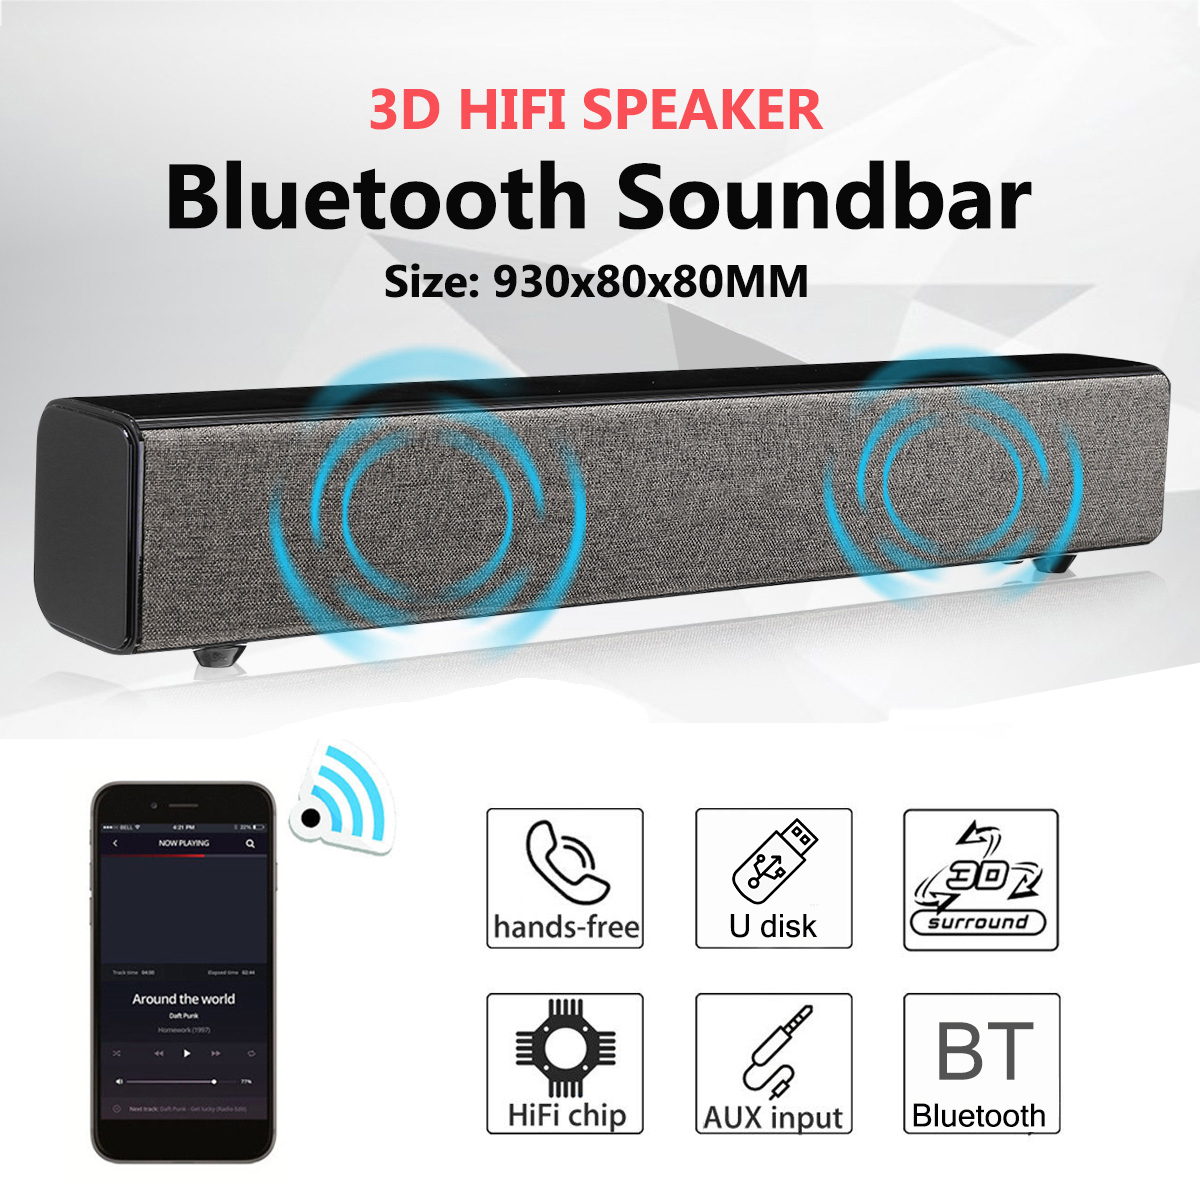 Home Theater 50W Bluetooth Soundbar TV AUX Optic Bluetooth Soundbar Speakers Soundbar with Subwoofer Speaker for TV with Remove